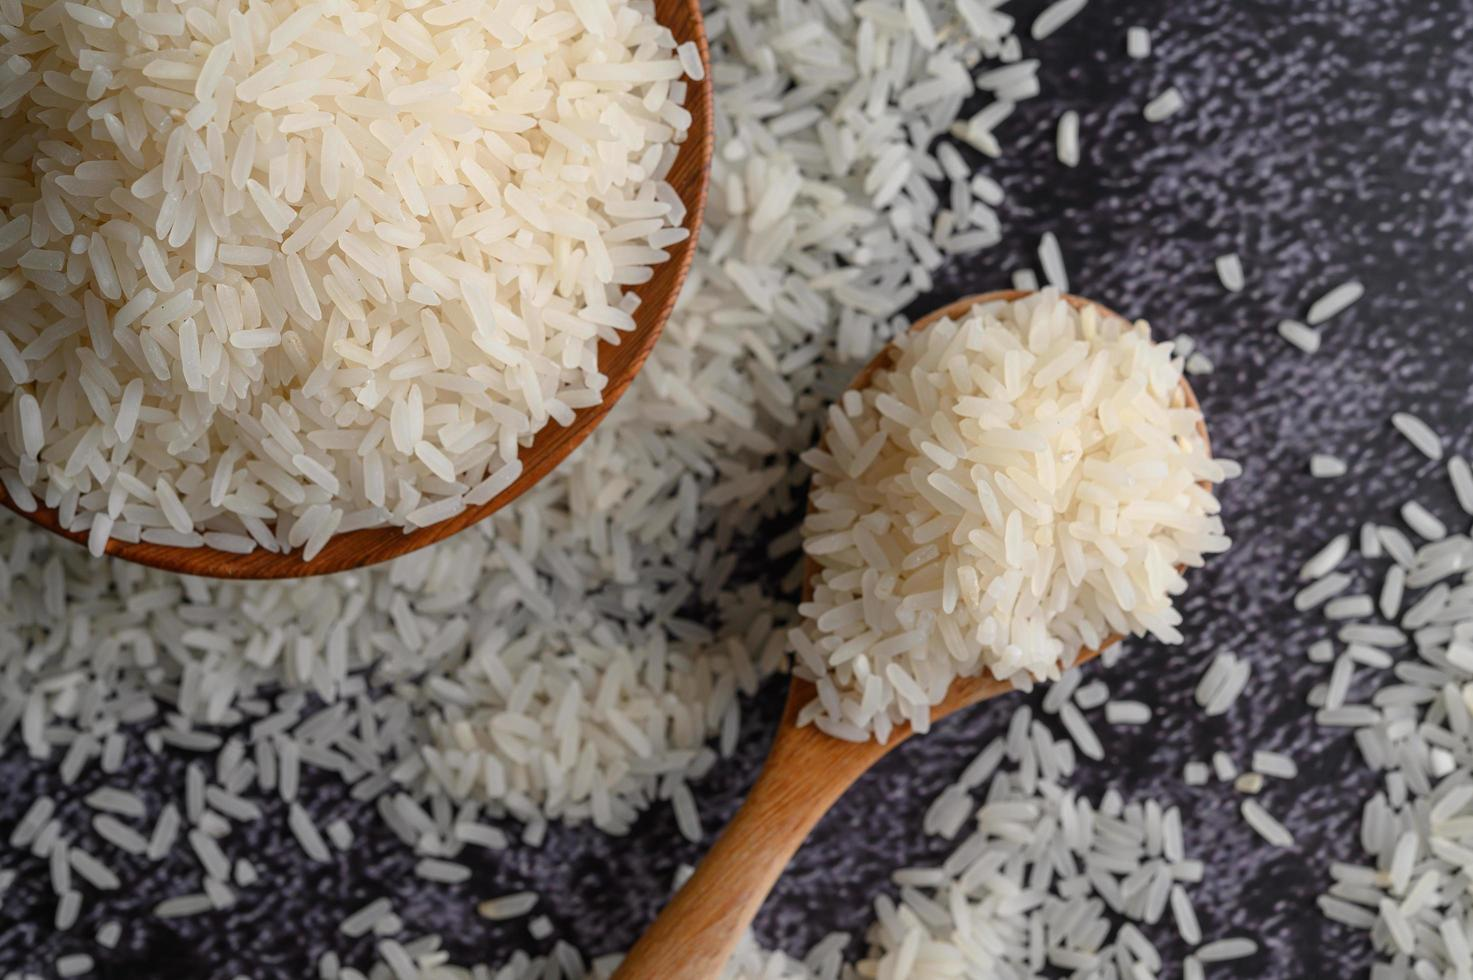 Close-up of milled rice in bowls photo